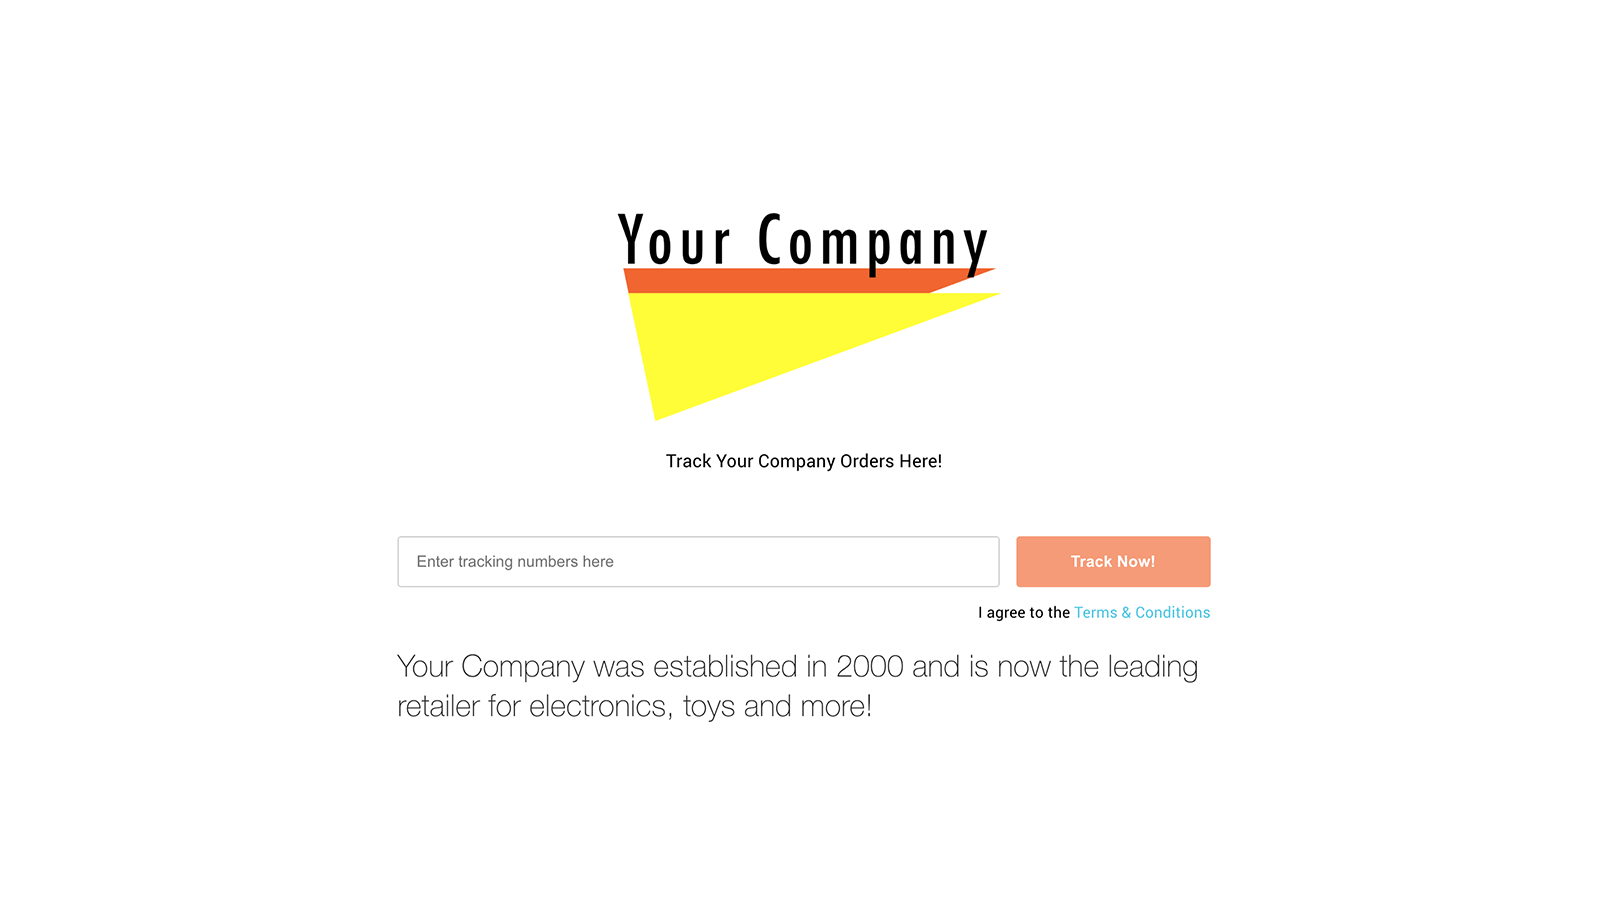 Fully branded tracking experience for customers with a web page